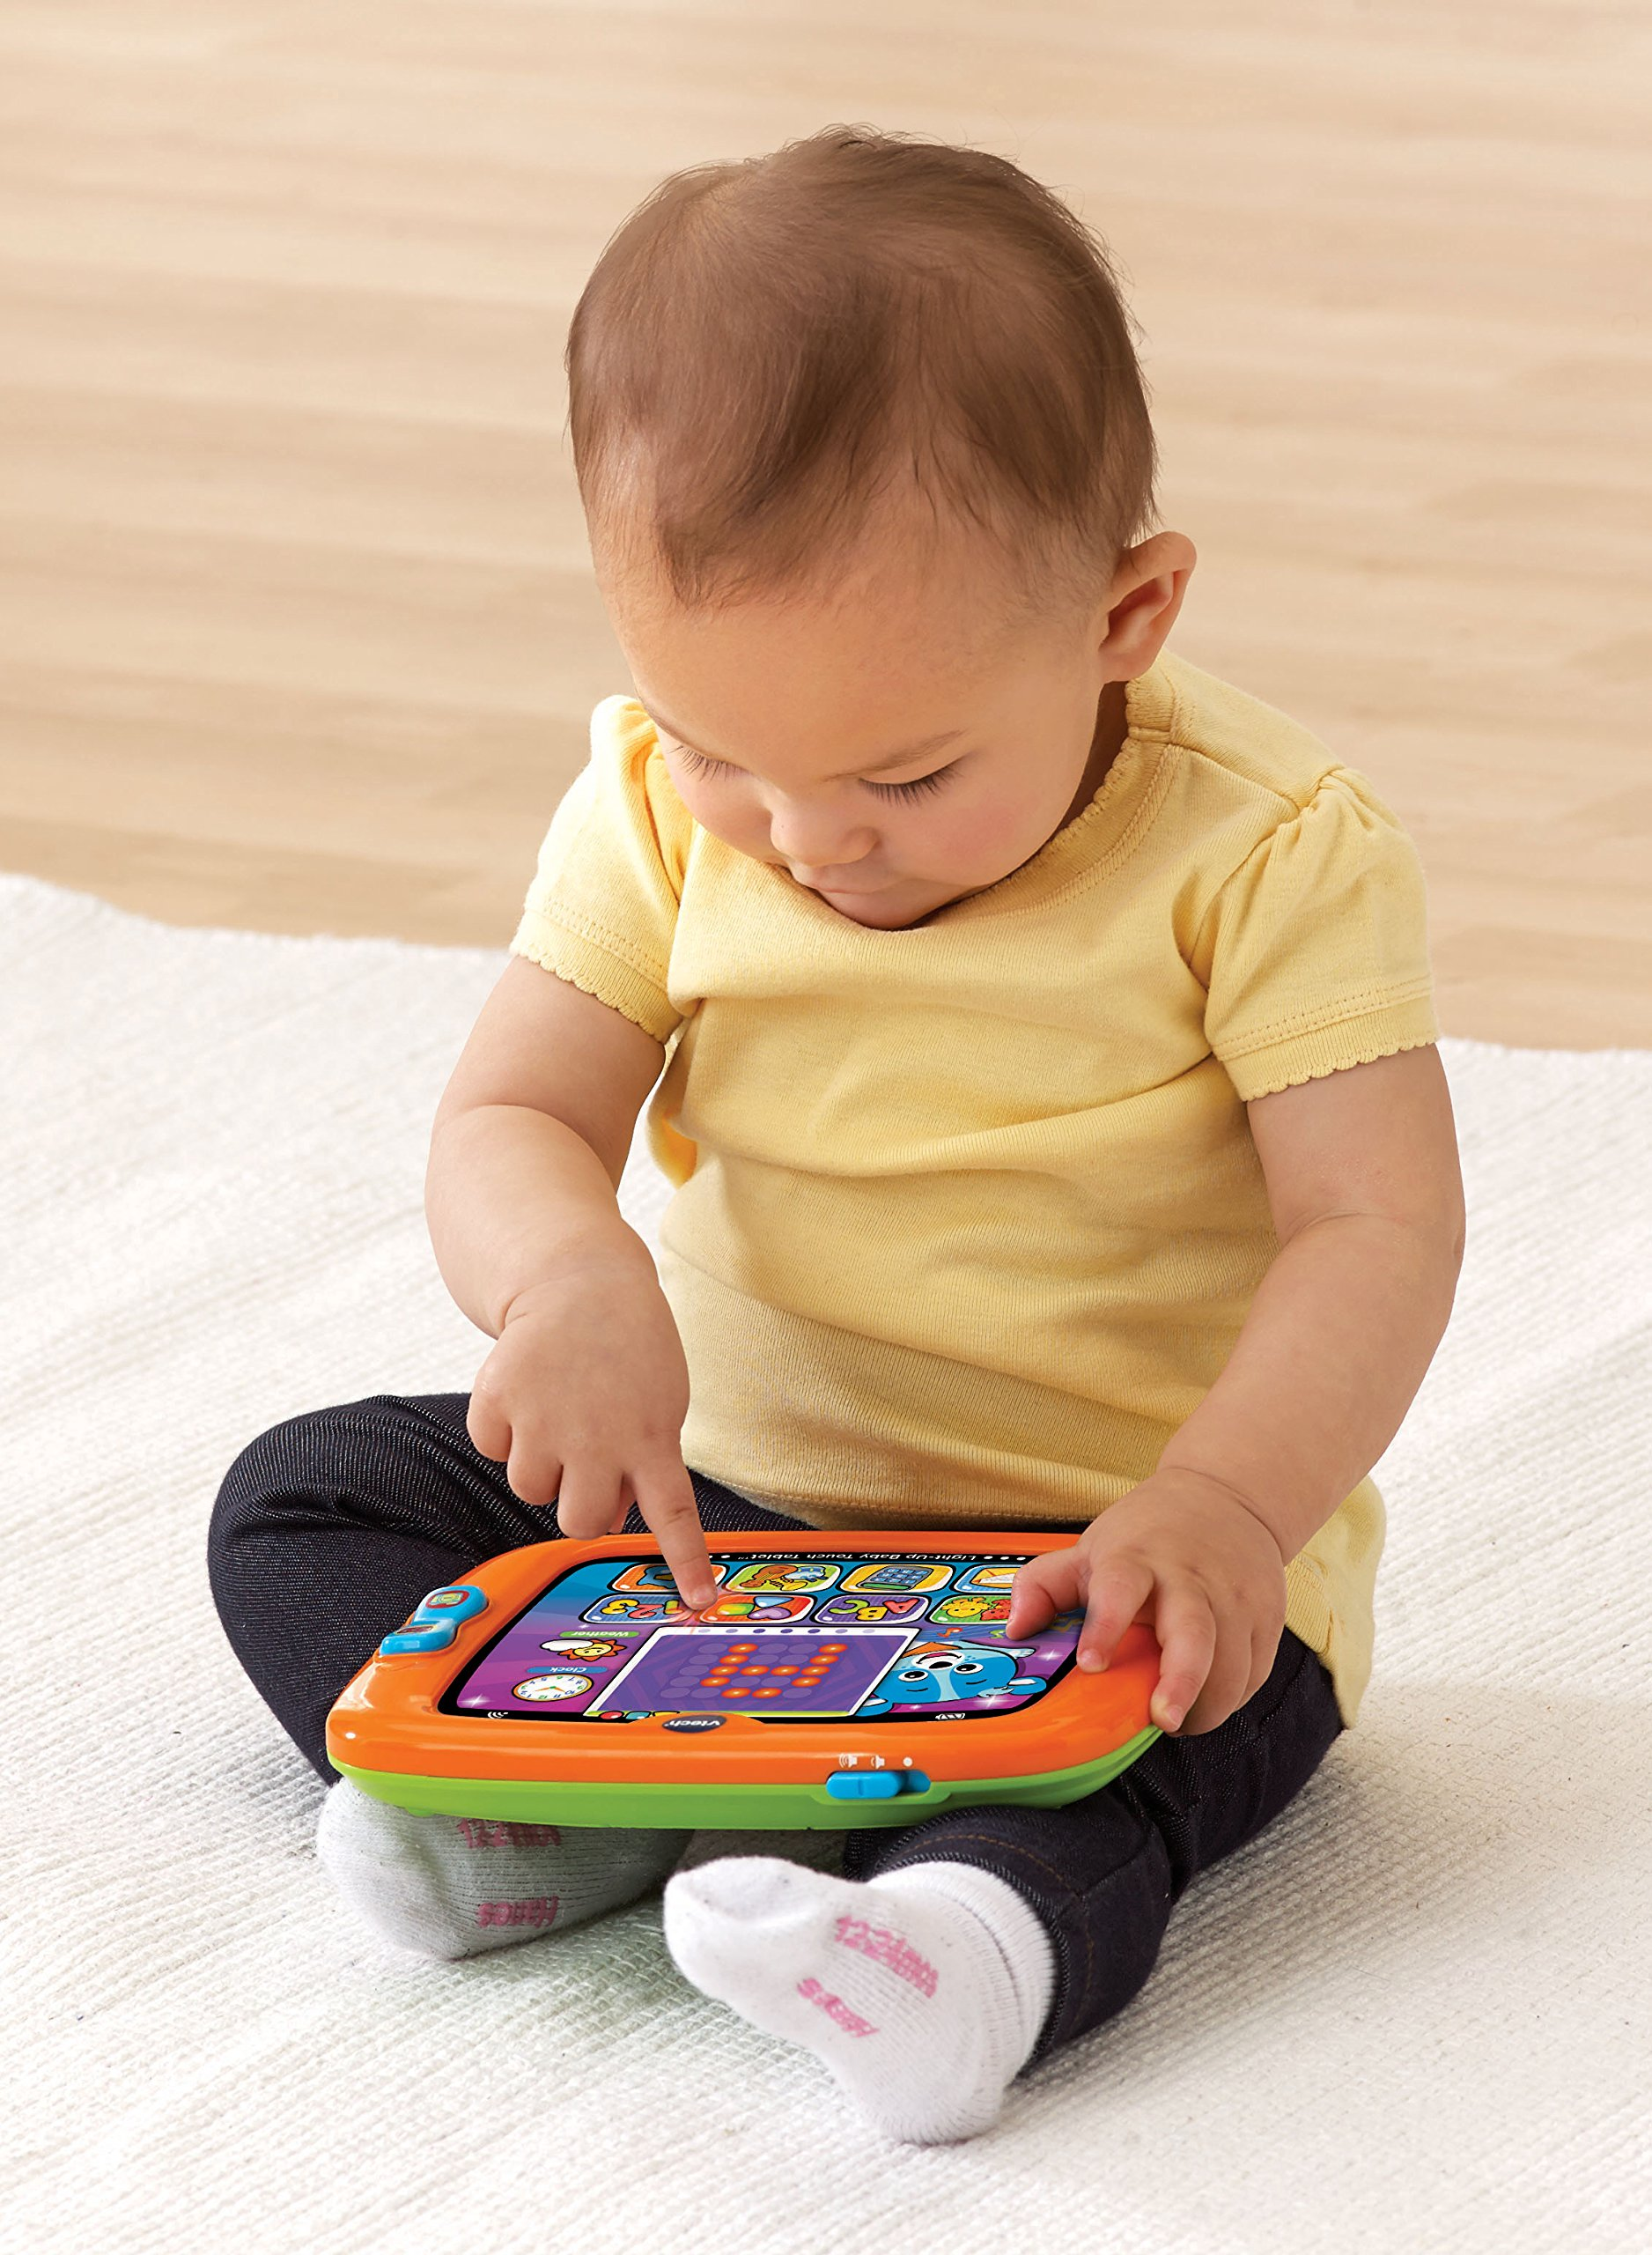 10 Month Old Baby Development & Learning Toys   Fisher-Price